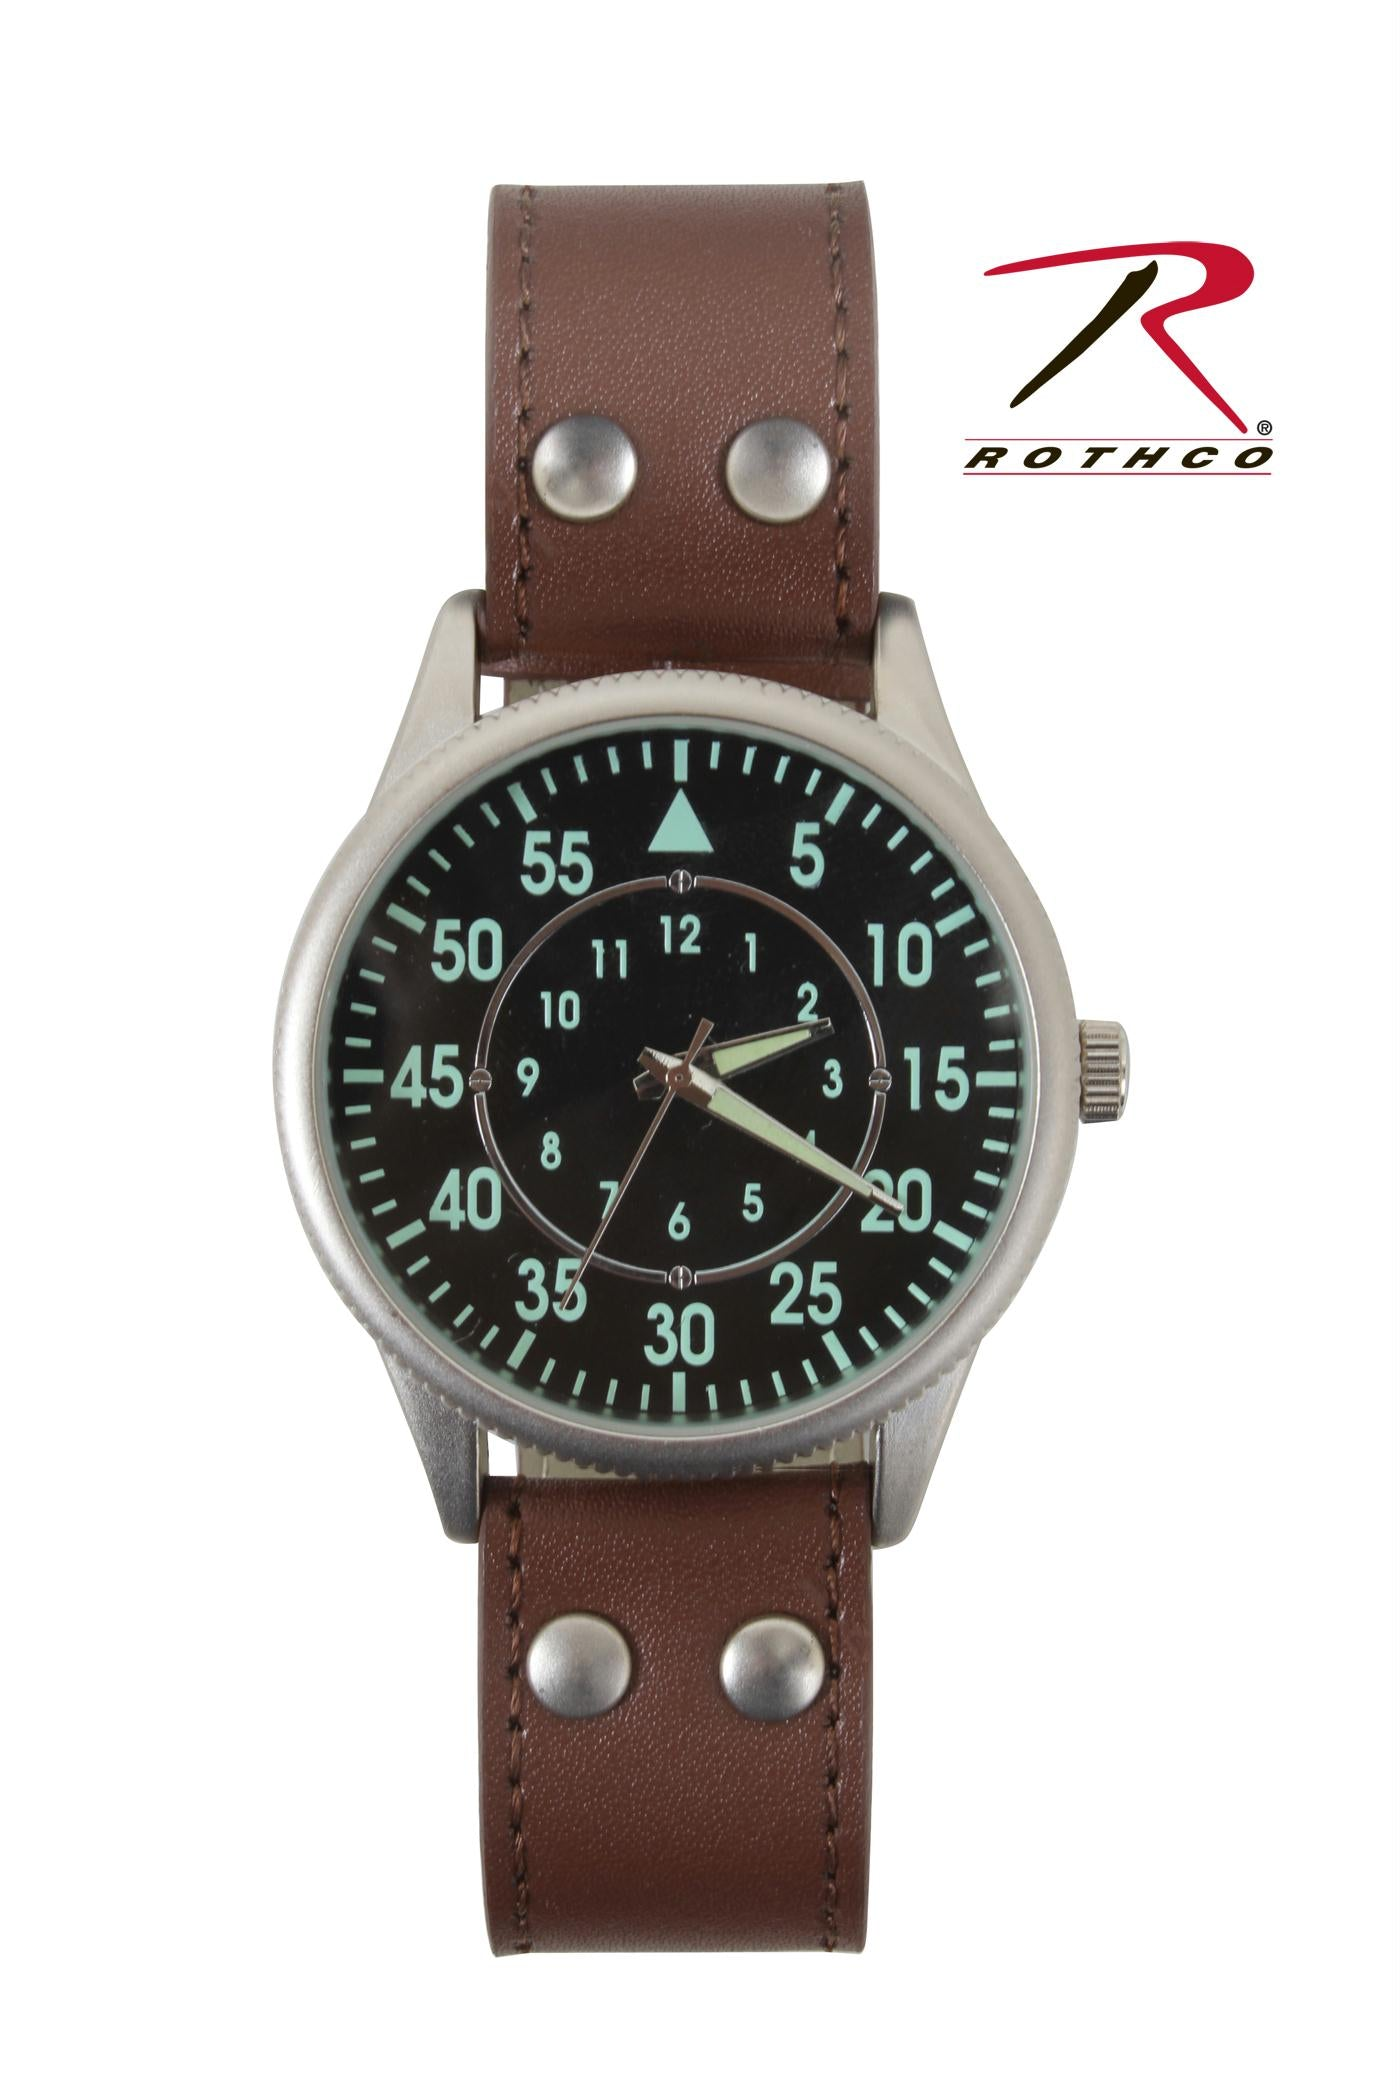 Rothco Military Style Watch With Leather Strap